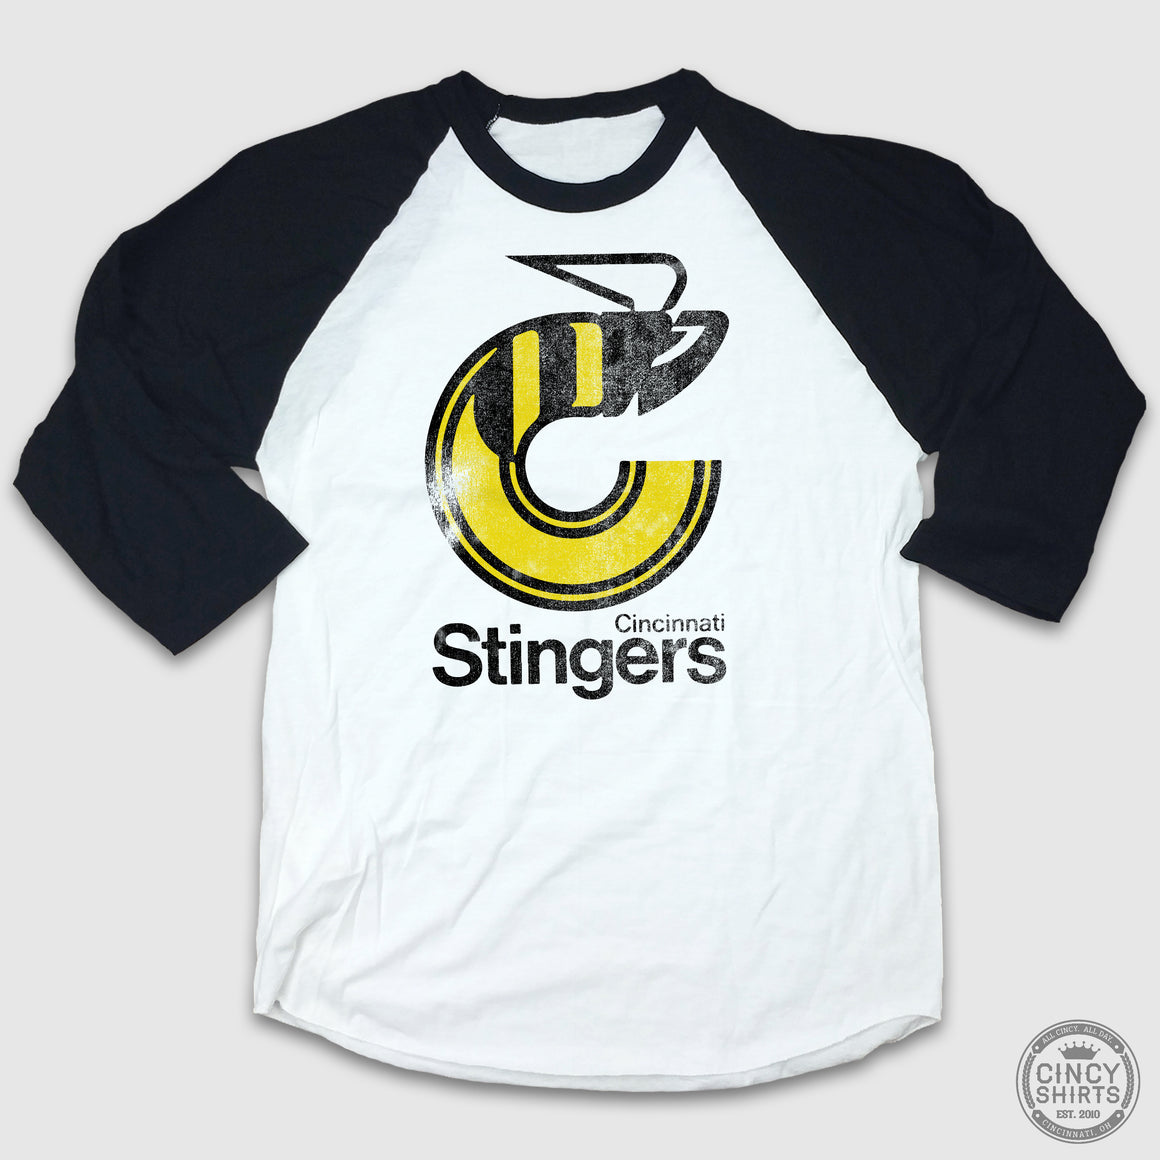 Cincinnati Stingers 3/4 Sleeve Raglan - Cincy Shirts